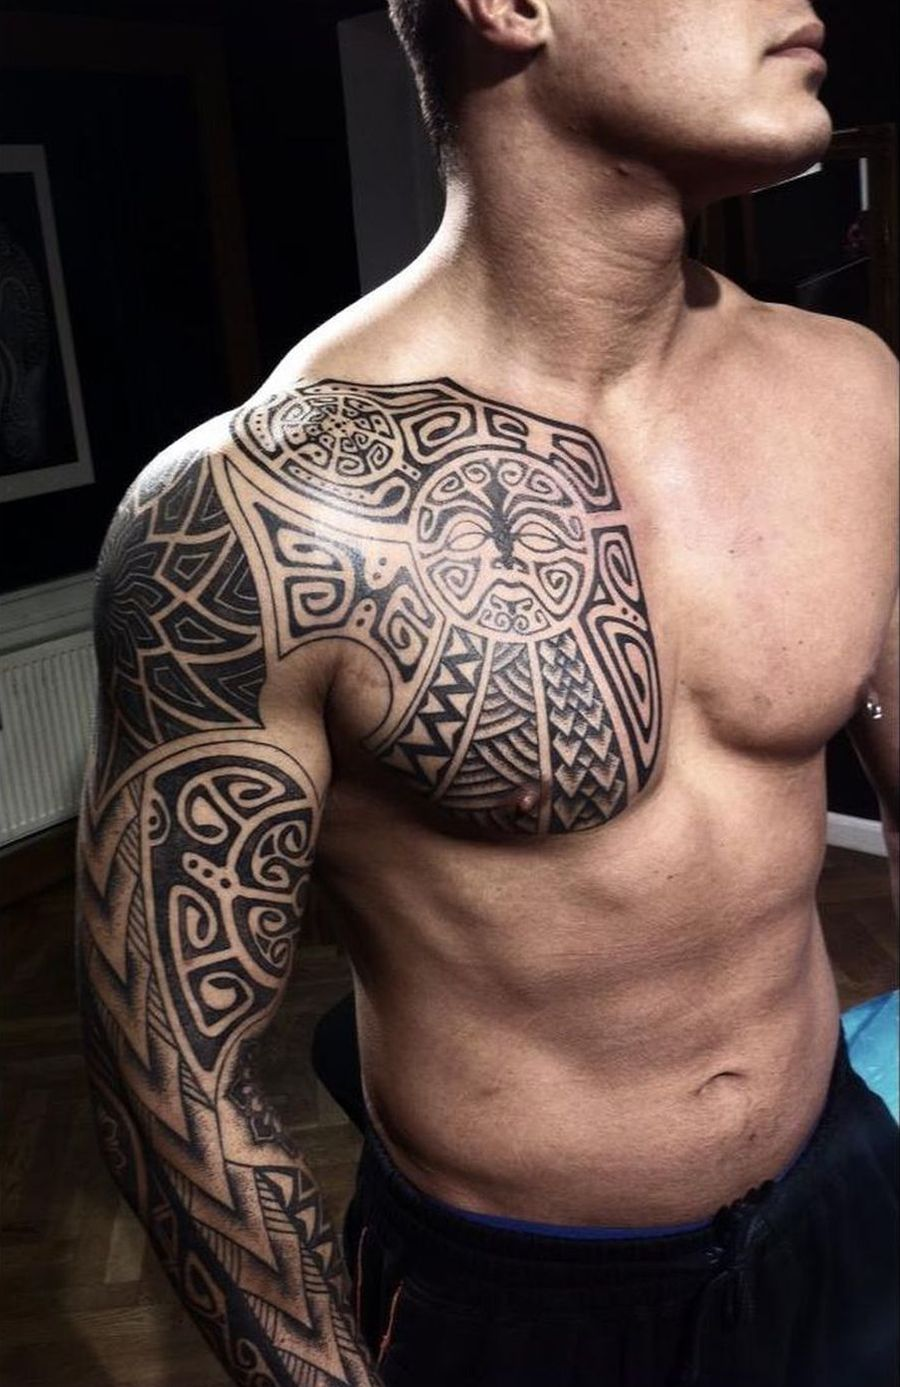 Vikings tattoos by Peter Walrus Madsen, a Mash-Up of